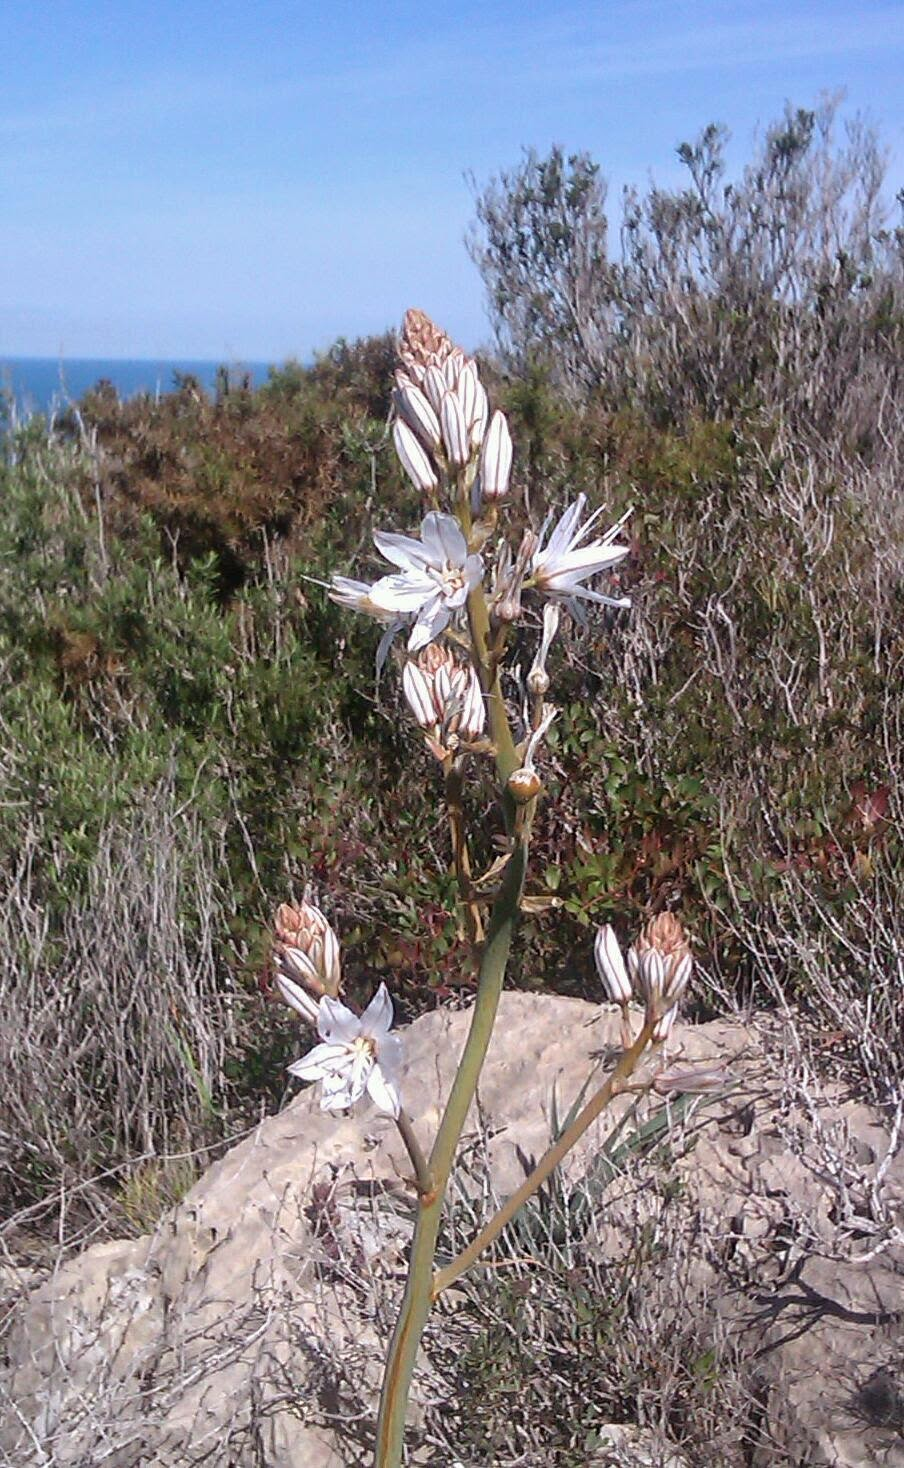 http://www.zazzle.co.uk/asphodel_flower_on_hills_above_cullera-137556564713028457?rf=238977740256437049